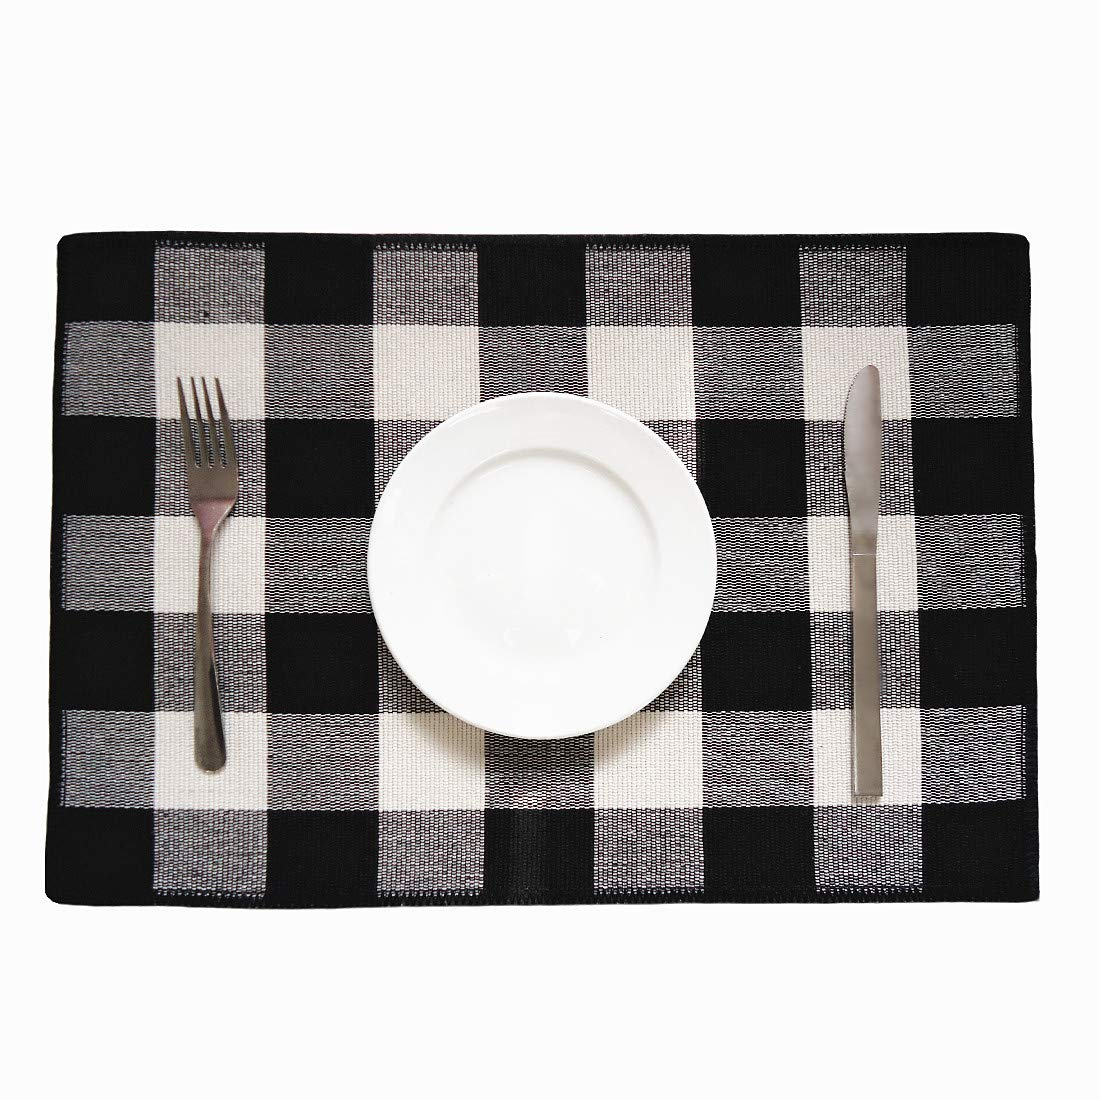 Awe Inspiring Levinis Cotton Placemats Set Of 6 Durable Buffalo Check Place Mats For Kitchen Table Easy To Care Machine Washable Download Free Architecture Designs Scobabritishbridgeorg